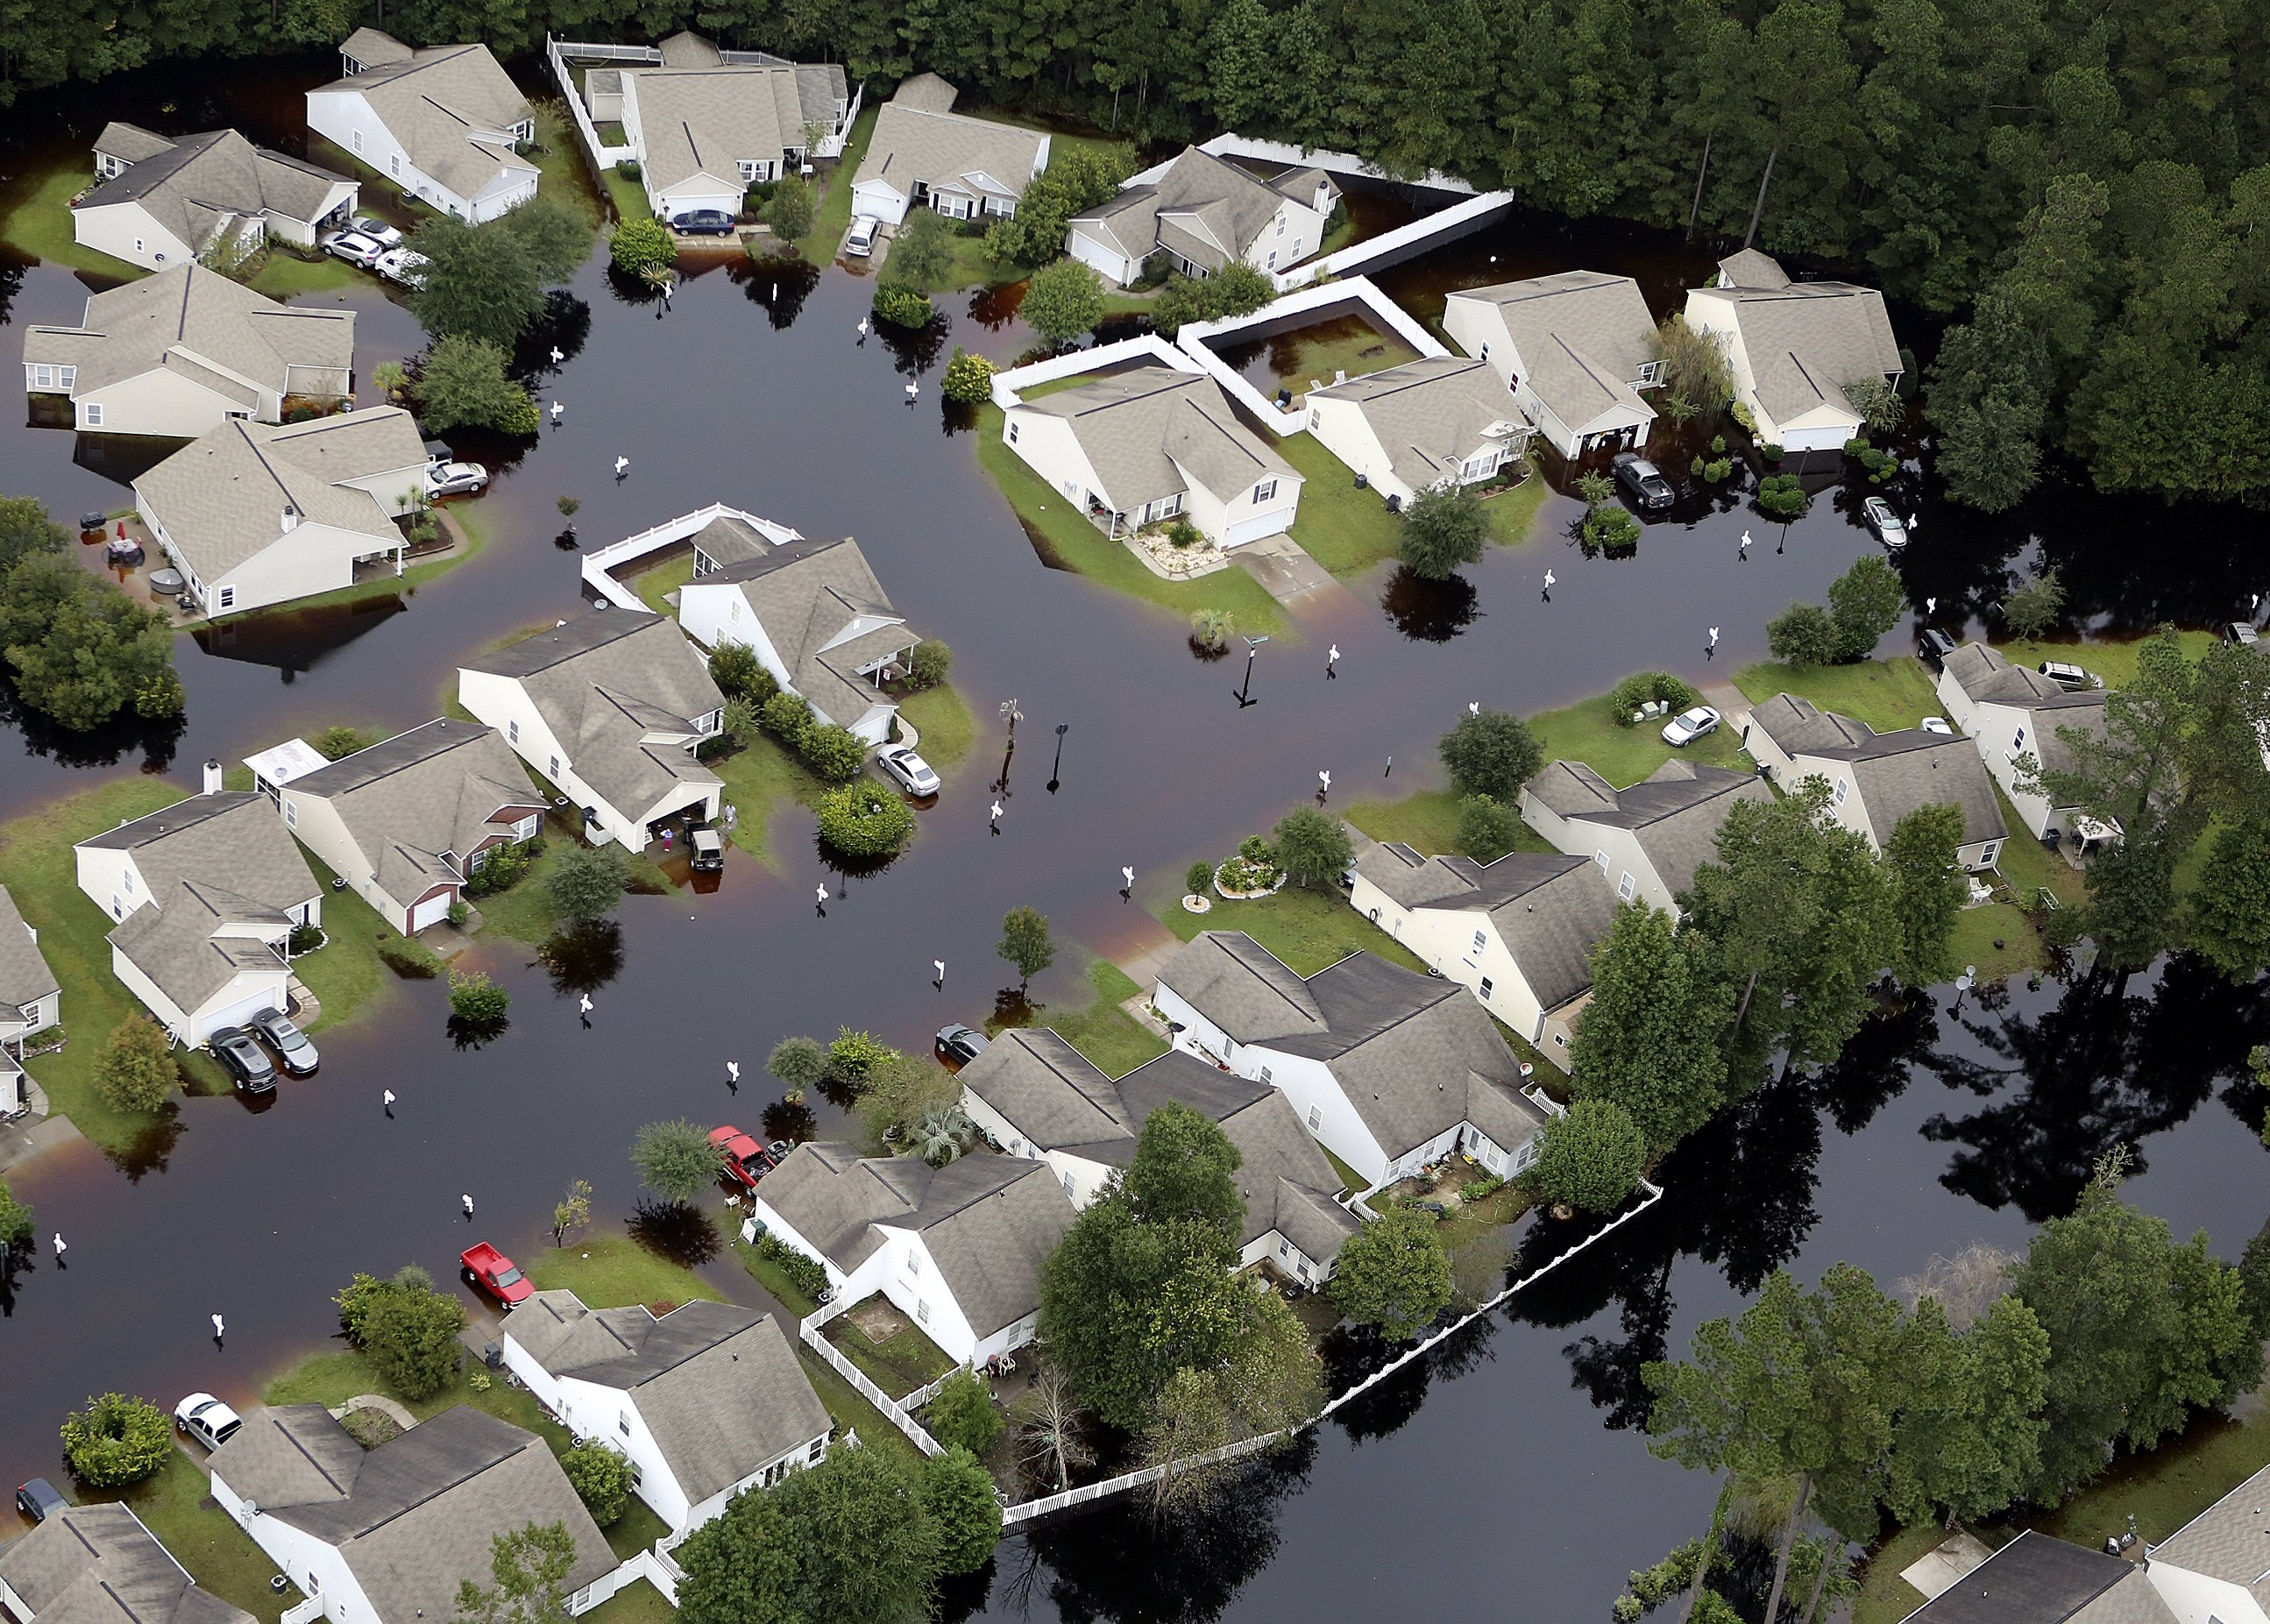 Flooding around homes in the Carolina Forest community in Horry County, S.C., on Oct. 6, 2015.